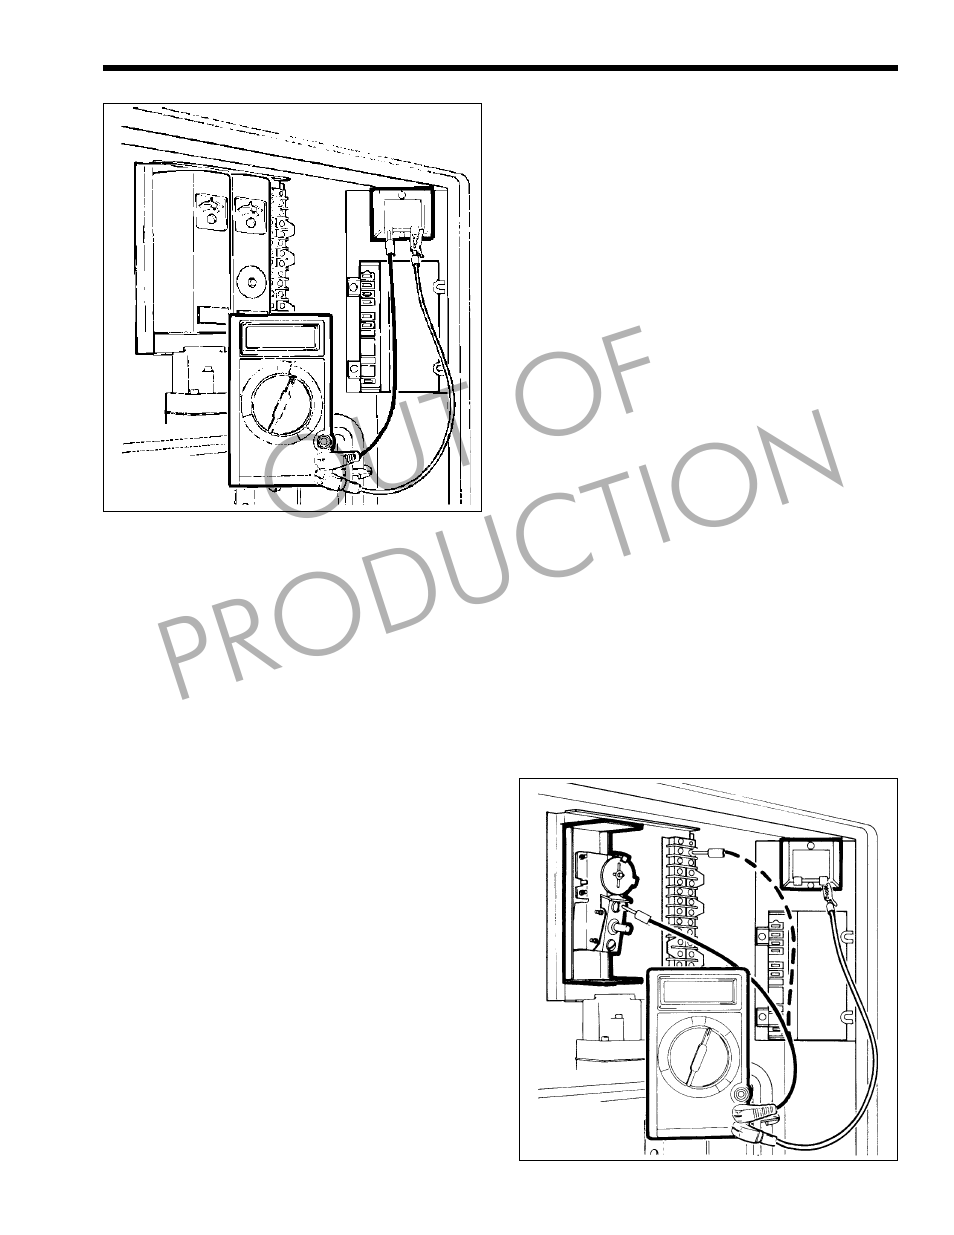 laars mighty therm lo nox ph sizes 250_400 install and operating manual page27 out of production laars mighty therm lo nox ph (sizes 250 400 laars mighty therm wiring diagram at n-0.co